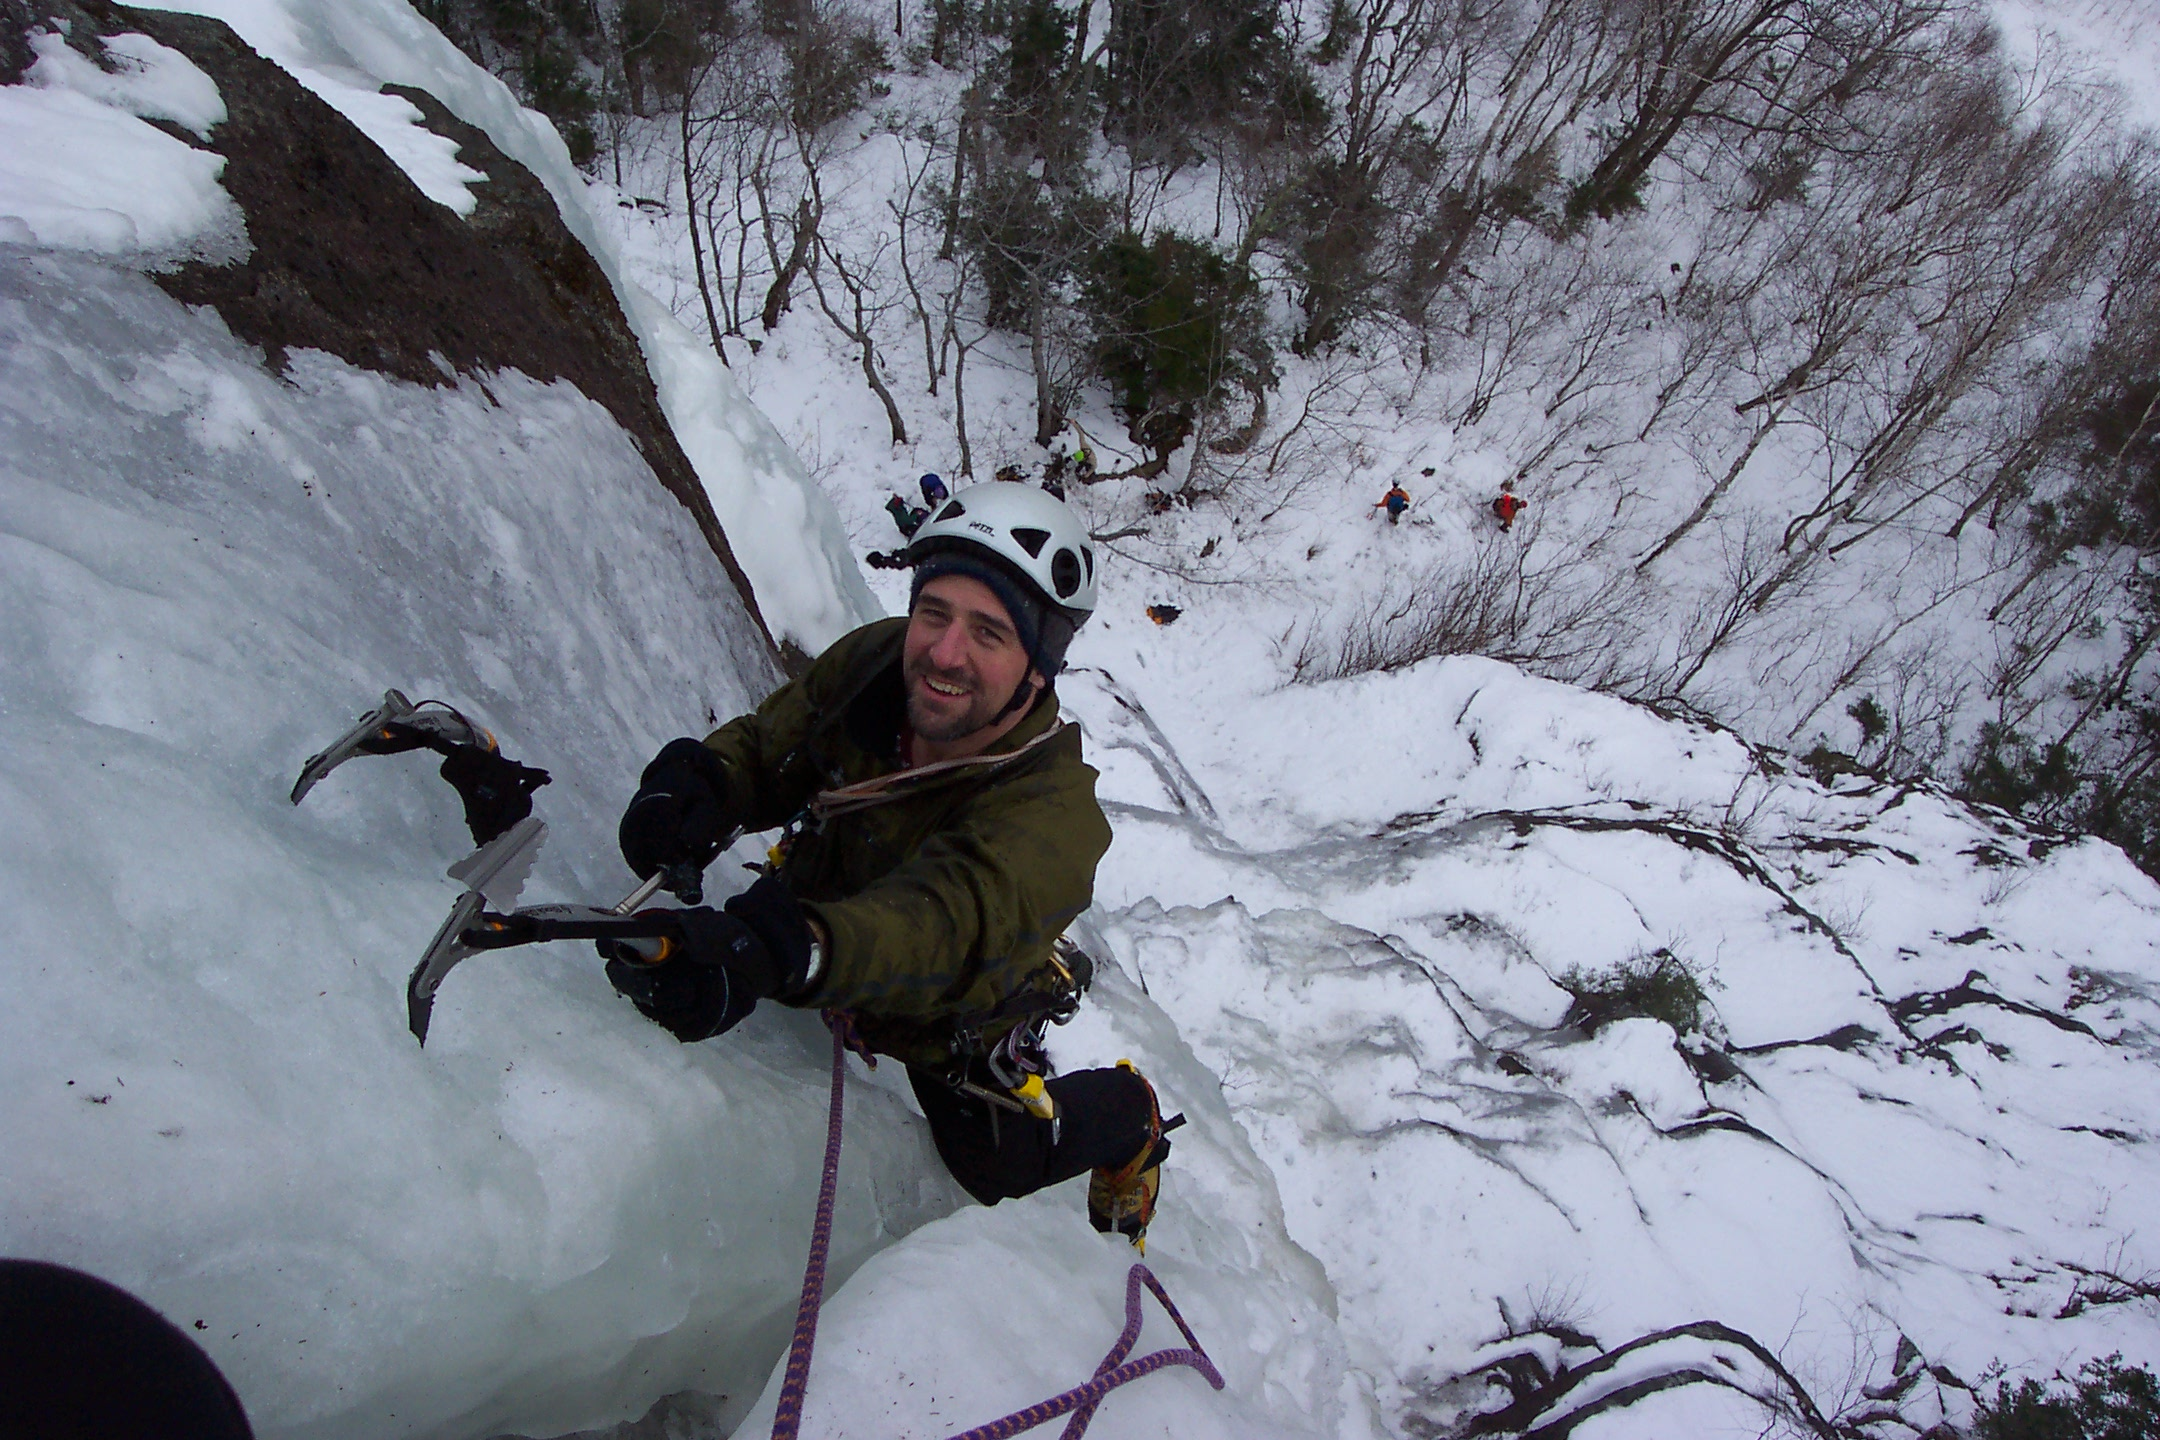 Dave climbing ice in New Hampshire